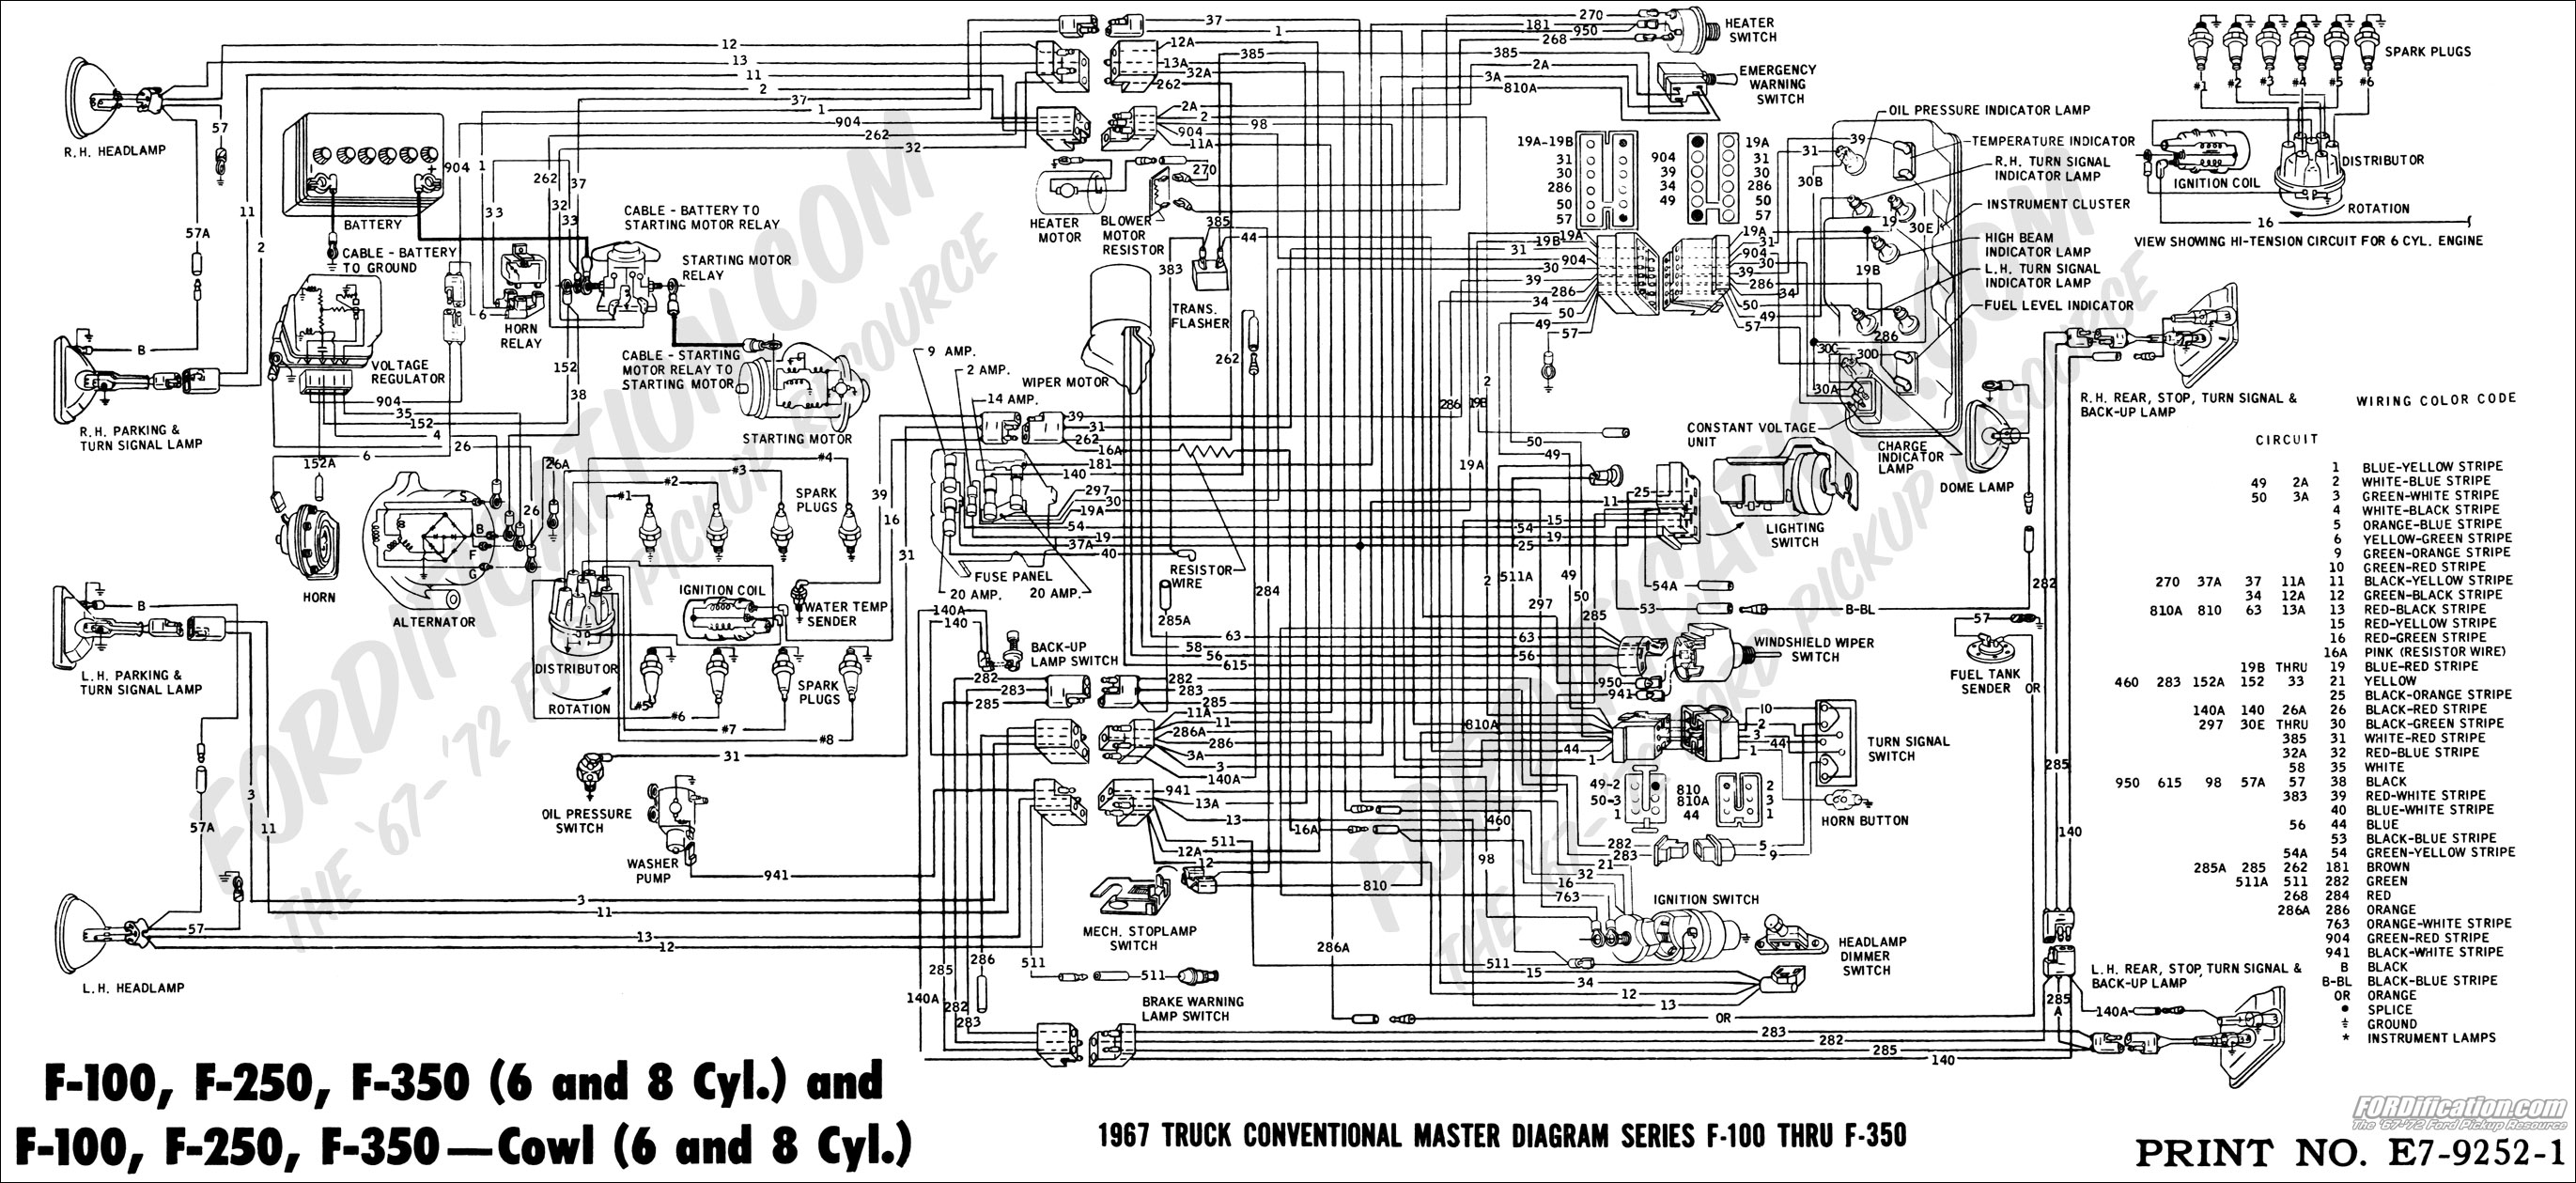 1967 Ford F250 Wiring Diagram - Jajvmb.danielaharde.de •  Ford Alternator Wiring Diagram on 1967 camaro alternator wiring diagram, 67 ford mustang distributor wiring, 67 ford mustang wiring diagram, mustang alternator wiring diagram, 67 mustang ignition wiring diagram, 3 wire alternator wiring diagram, 67 camaro alternator wiring diagram,